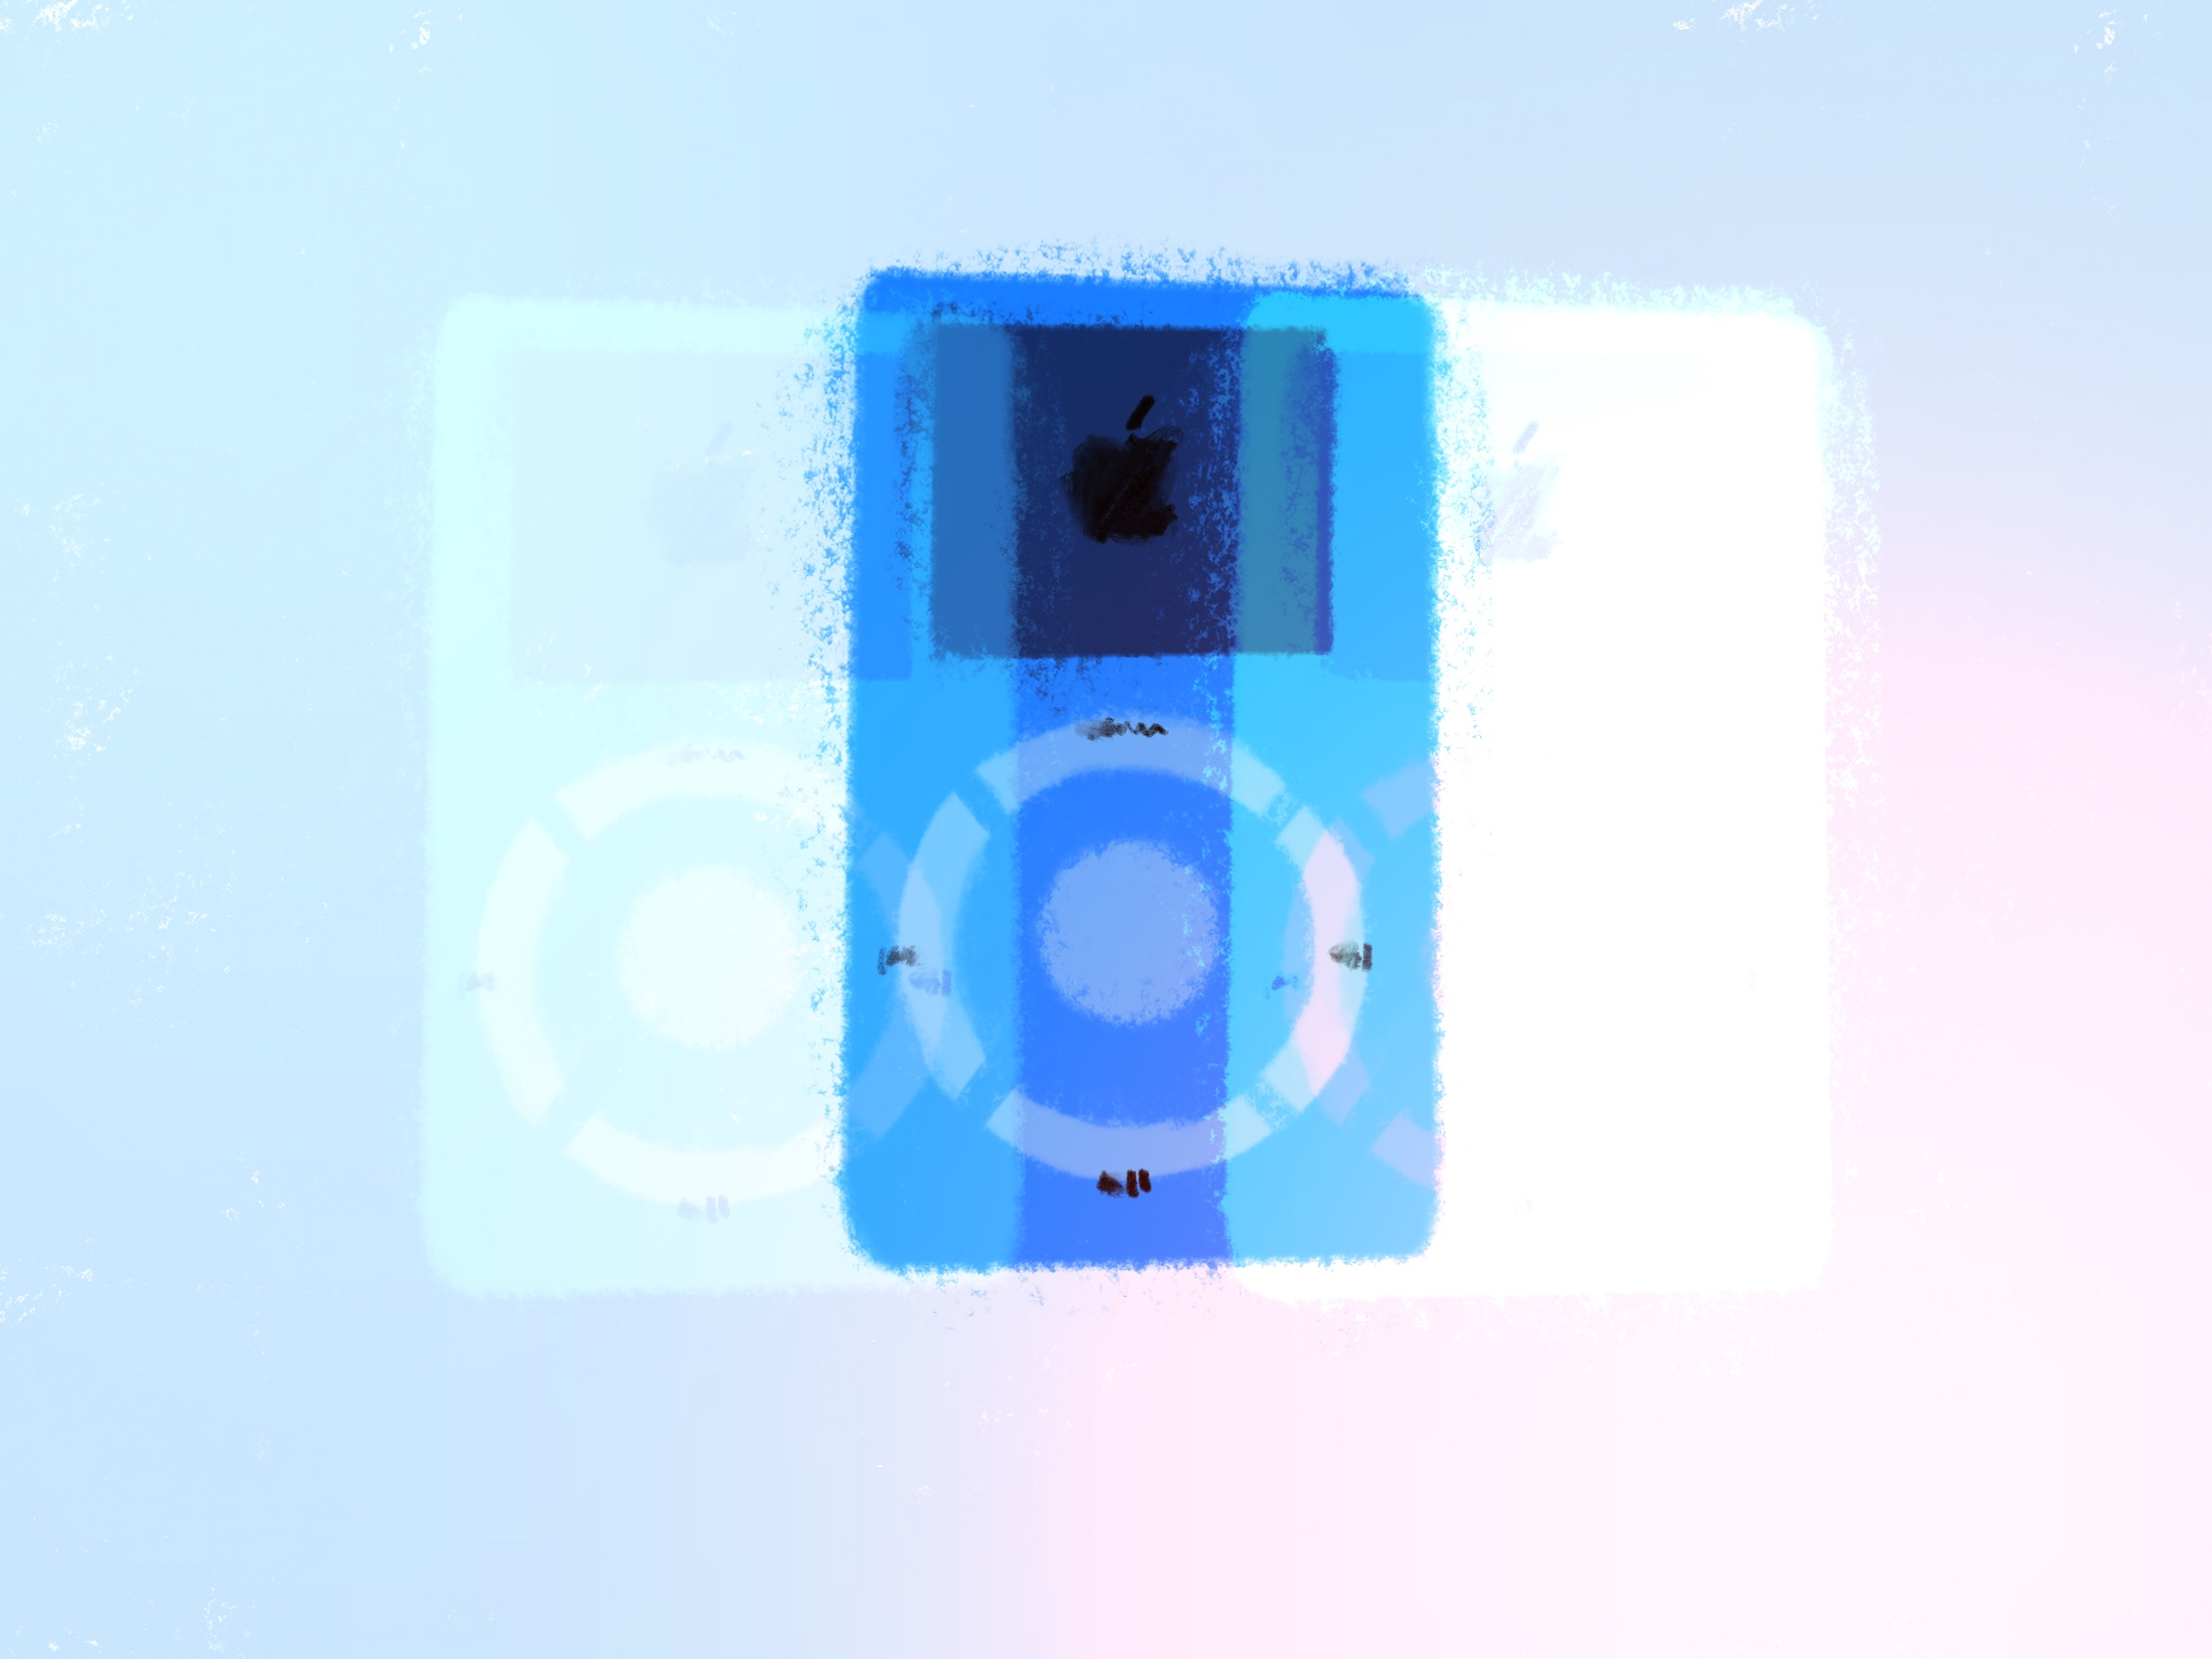 ipod illustration